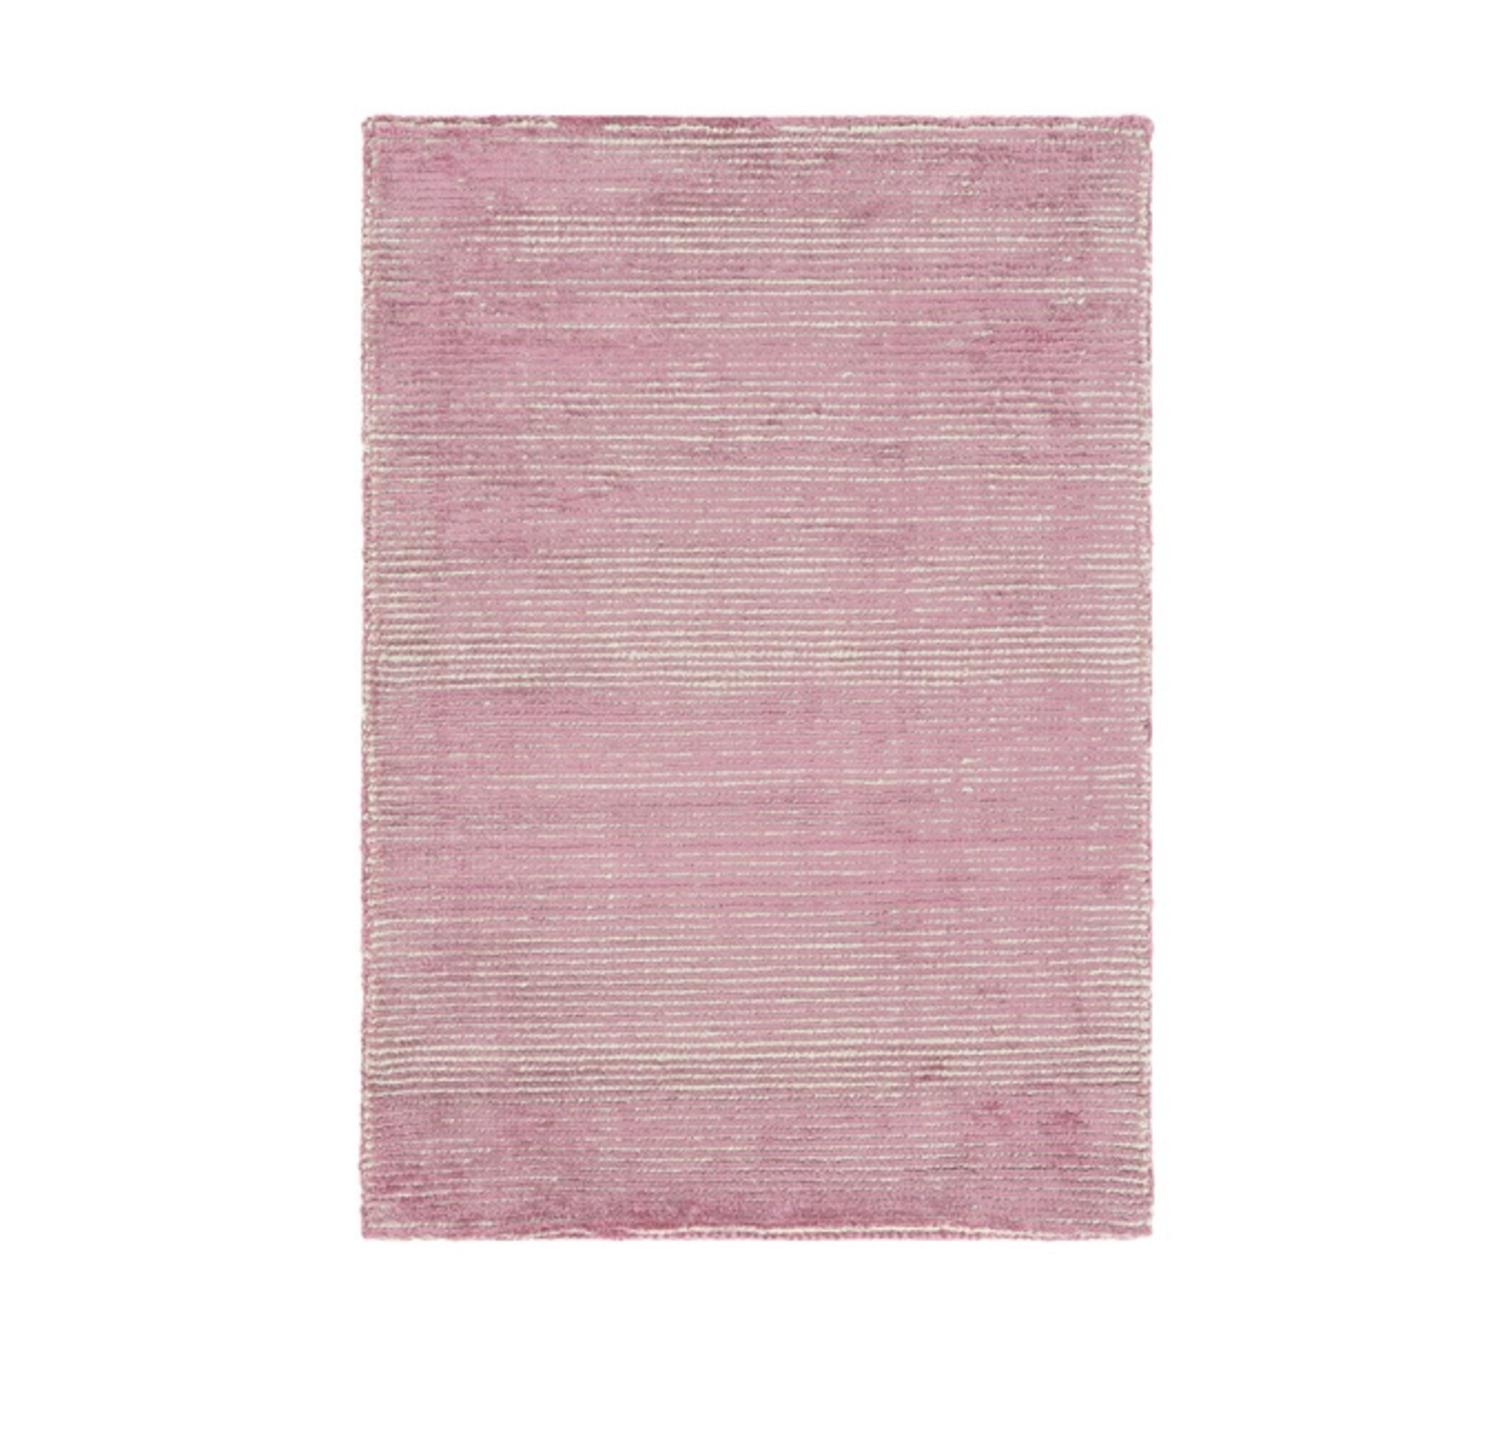 4' x 6'  Faded Comfort Dusty Rose and Lion Brown Hand Loo...